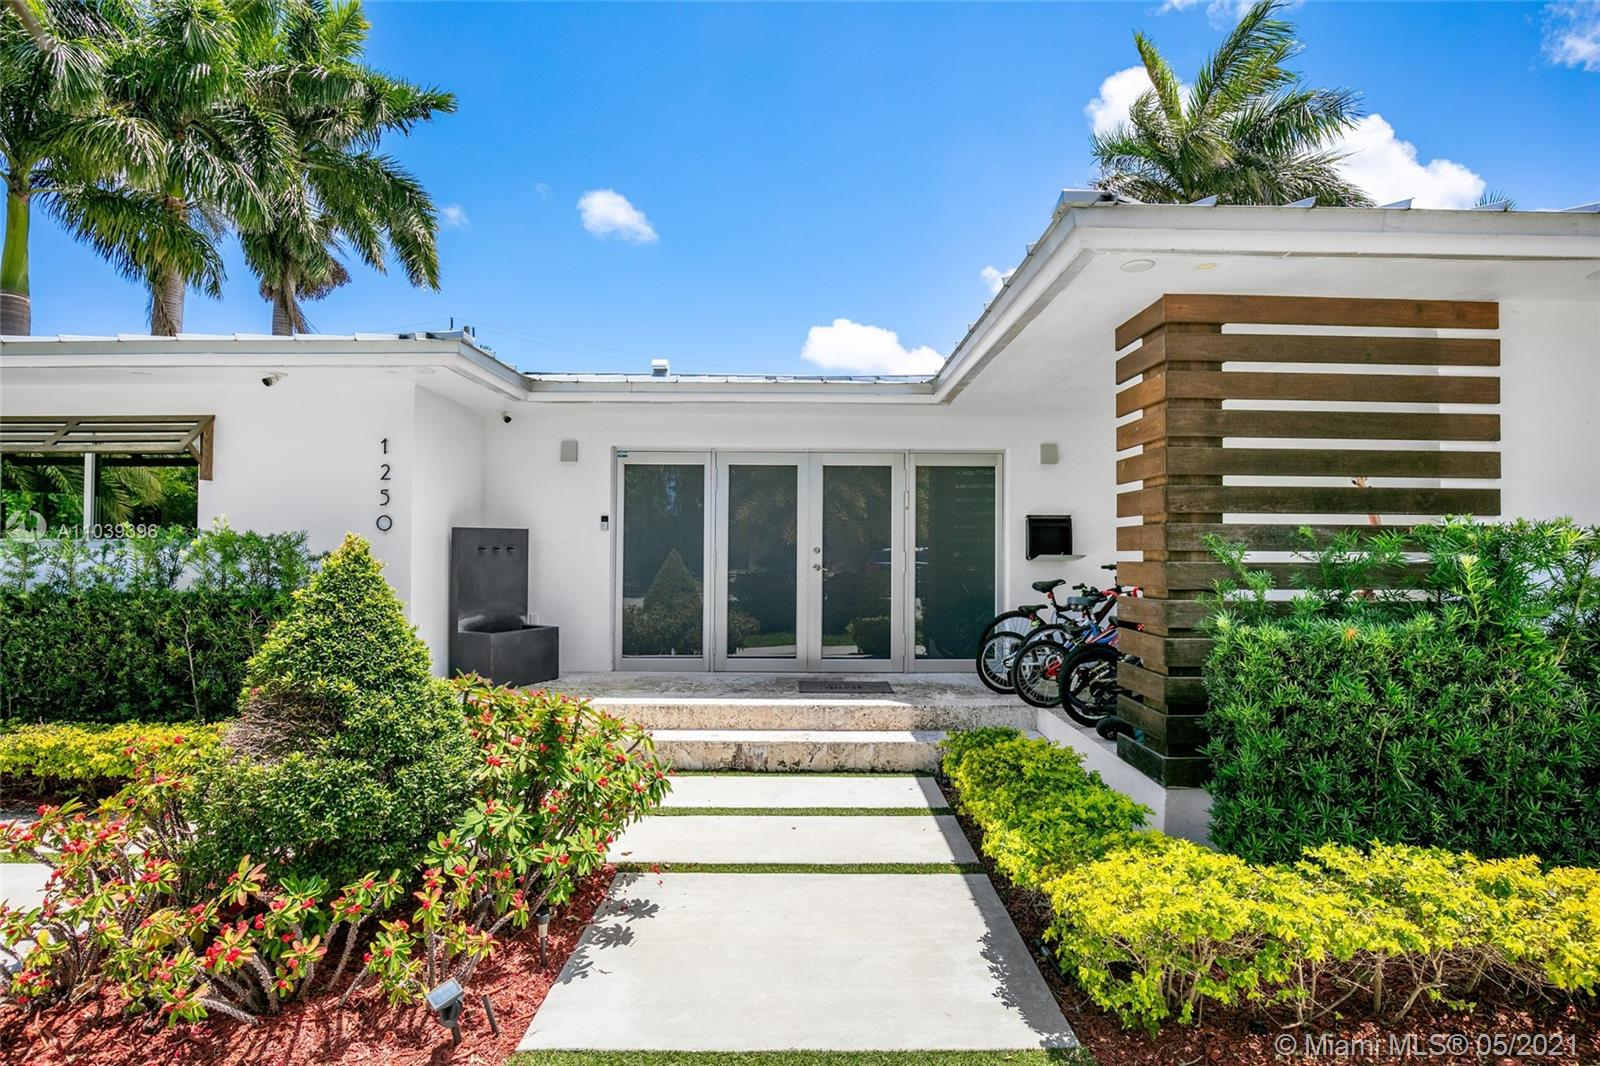 2,886 Square Foot Contemporary Gem located in Prestigious Bay Harbor Islands. This newly renovated 4bd/4ba home features an open concept w/ state of the art custom finishes. Completely rebuilt from the foundation, exterior walls & roof trusses. All en-suite baths + cabana bath perfect while enjoying new pool. Porcelain floors thru-out common areas & Chesapeake Clipper wood floors in the bdrms. All new plumbing, electric, LED lighting, roof, walls and impact windows.